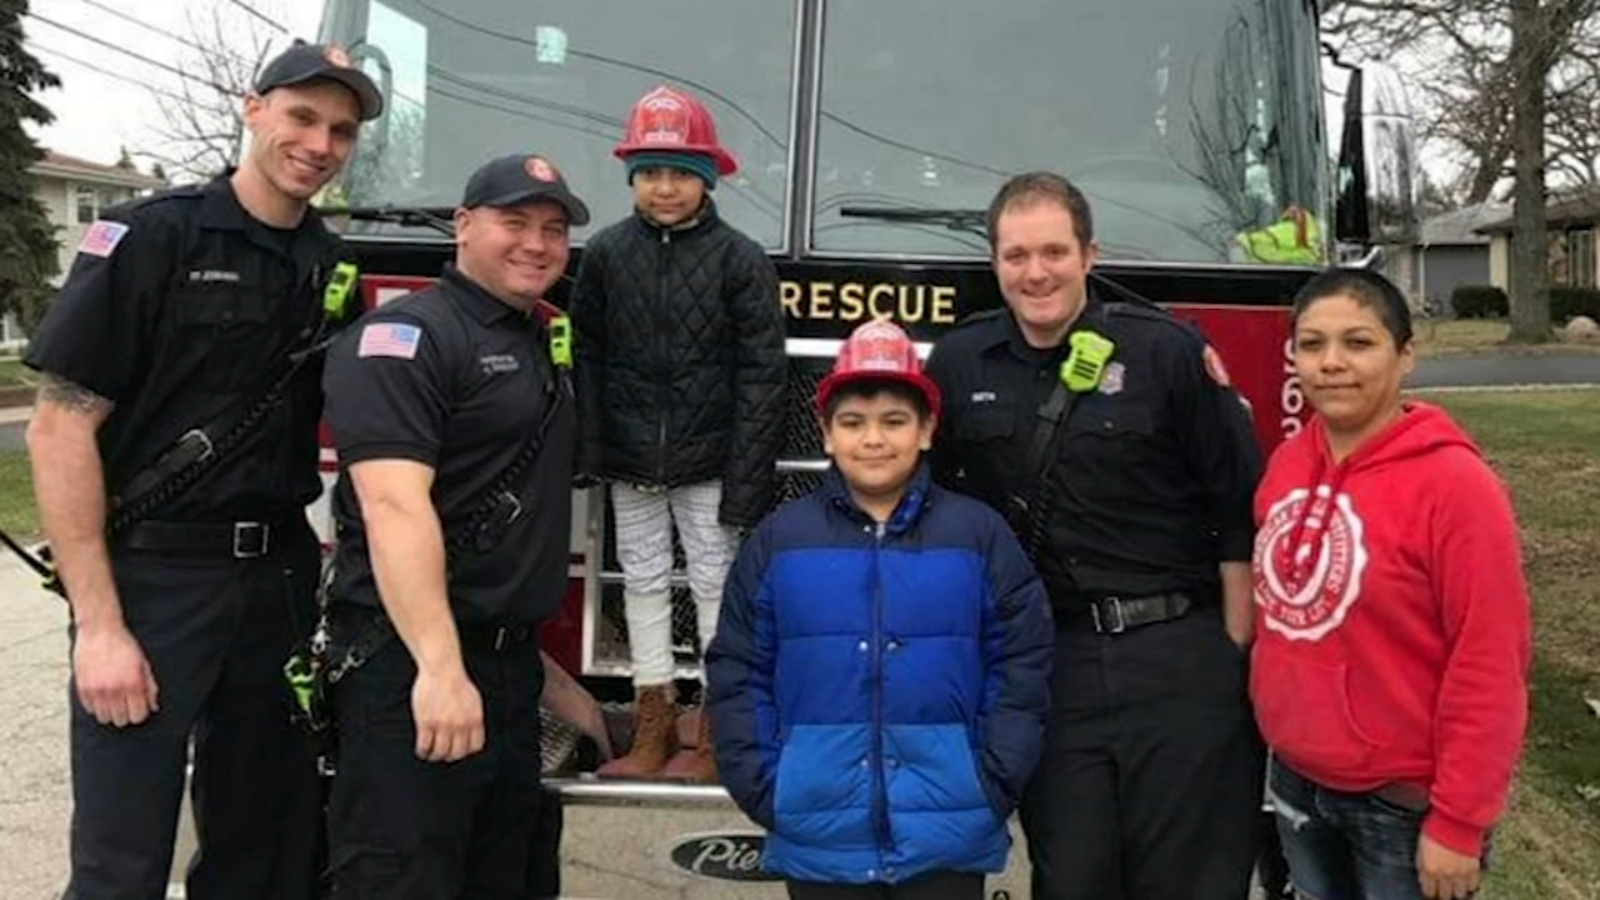 Oak Forest Fire Dept. launches Project Fire Buddies for kids battling illnesses